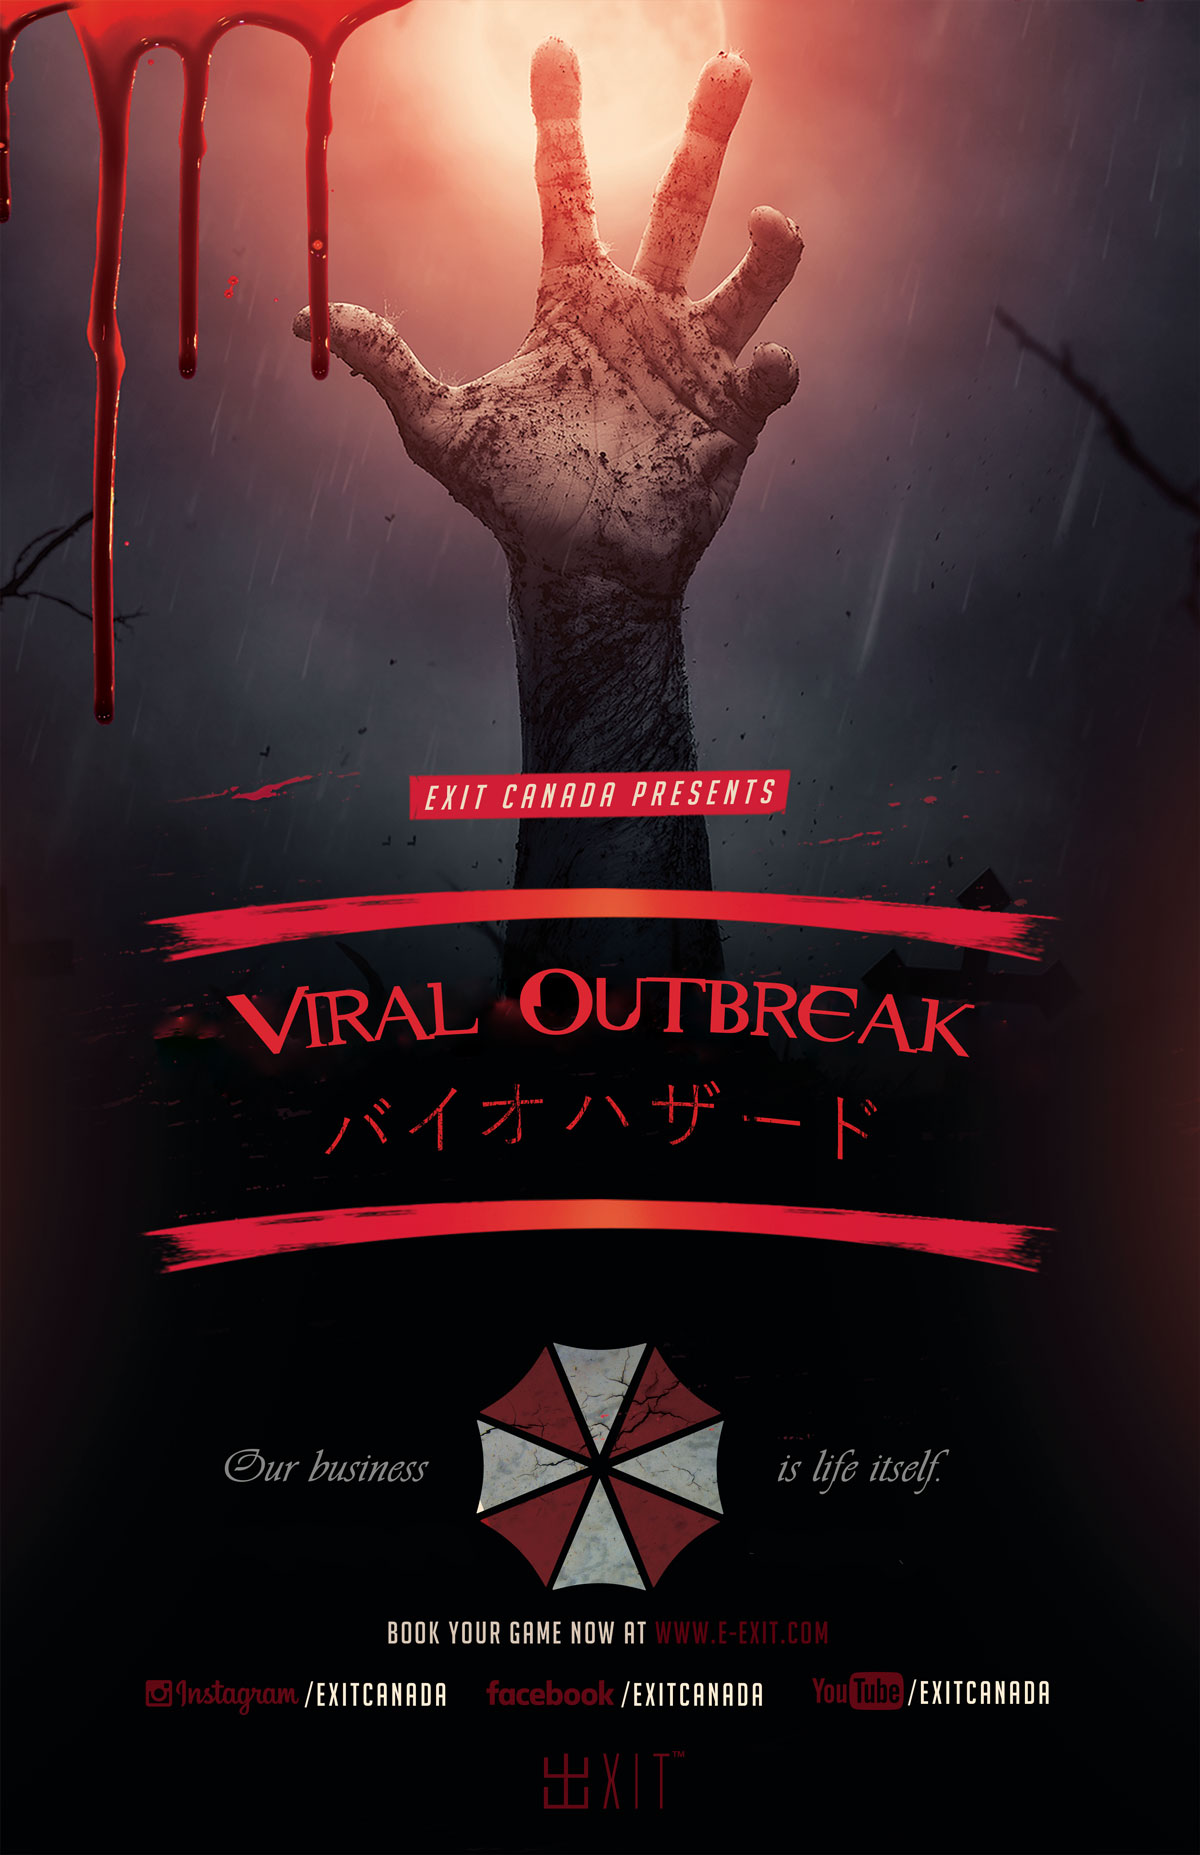 exit canada viral outbreak